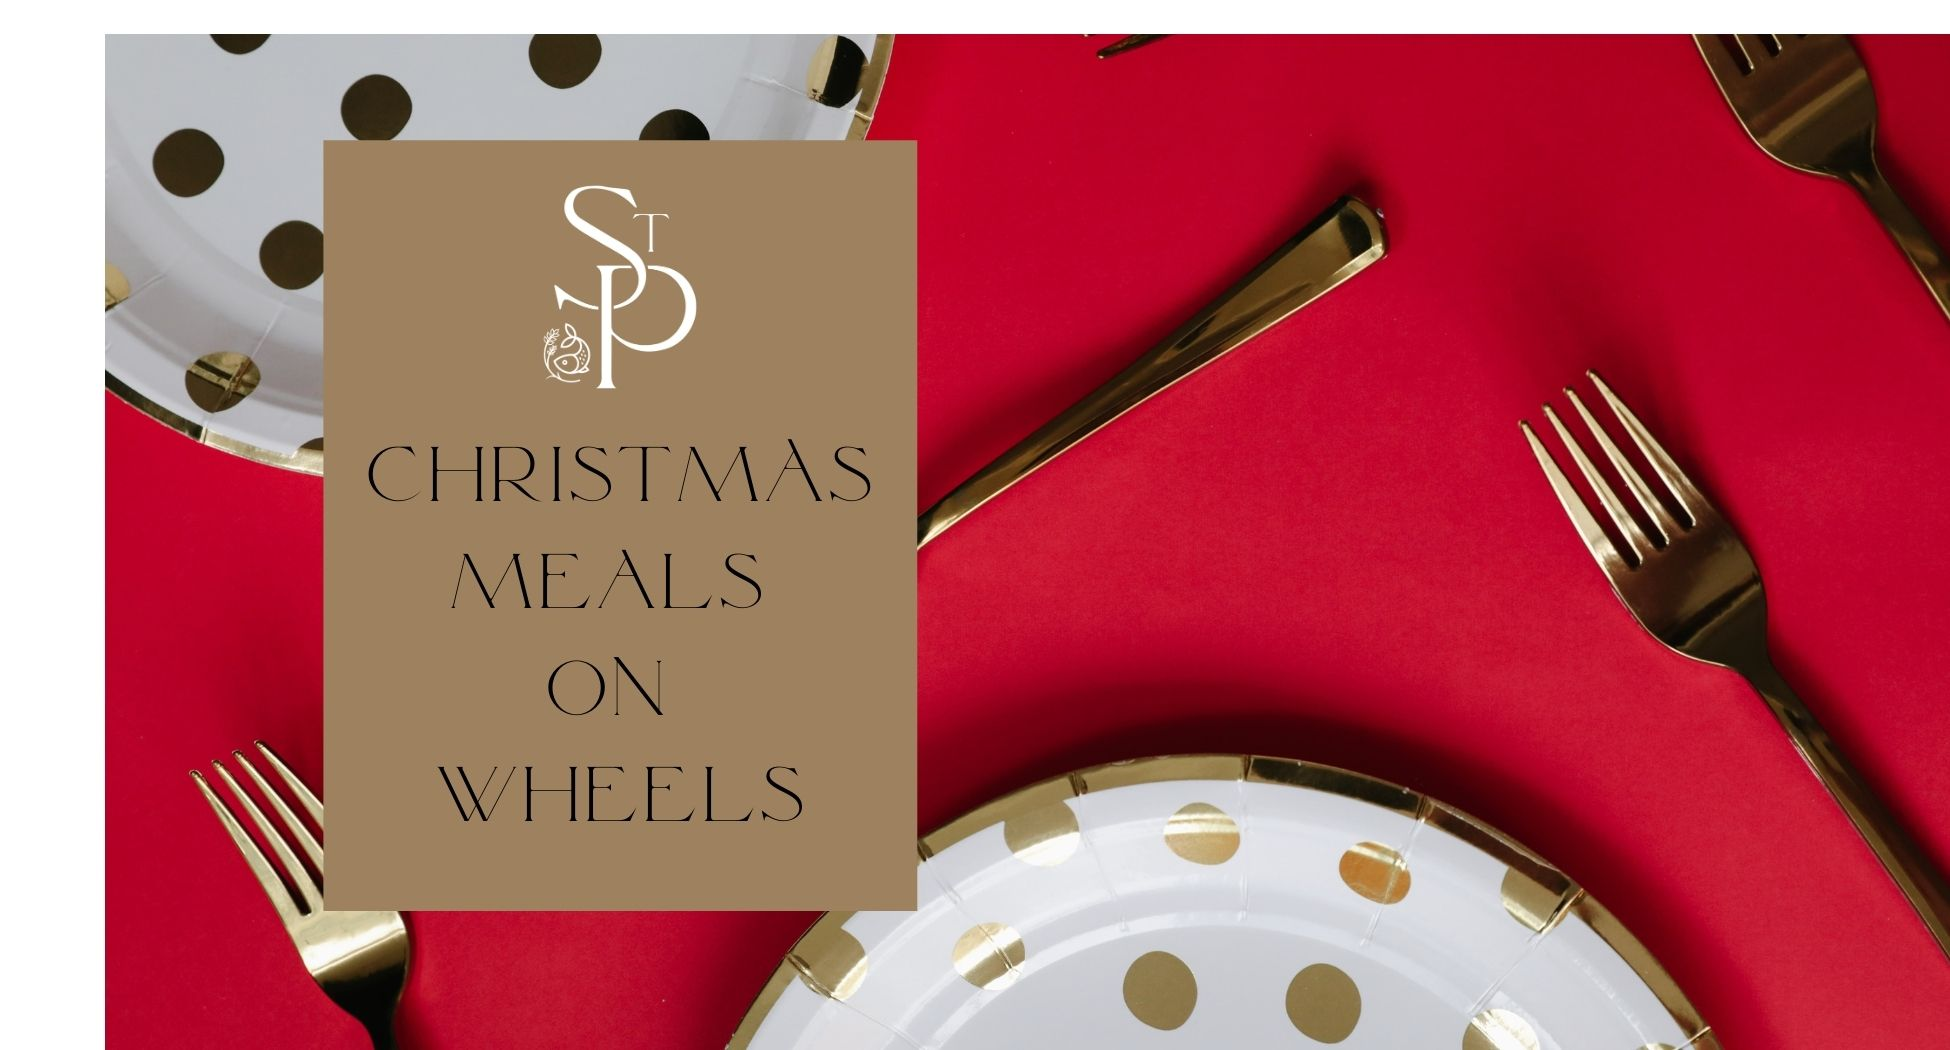 Christmas Meals On Wheels